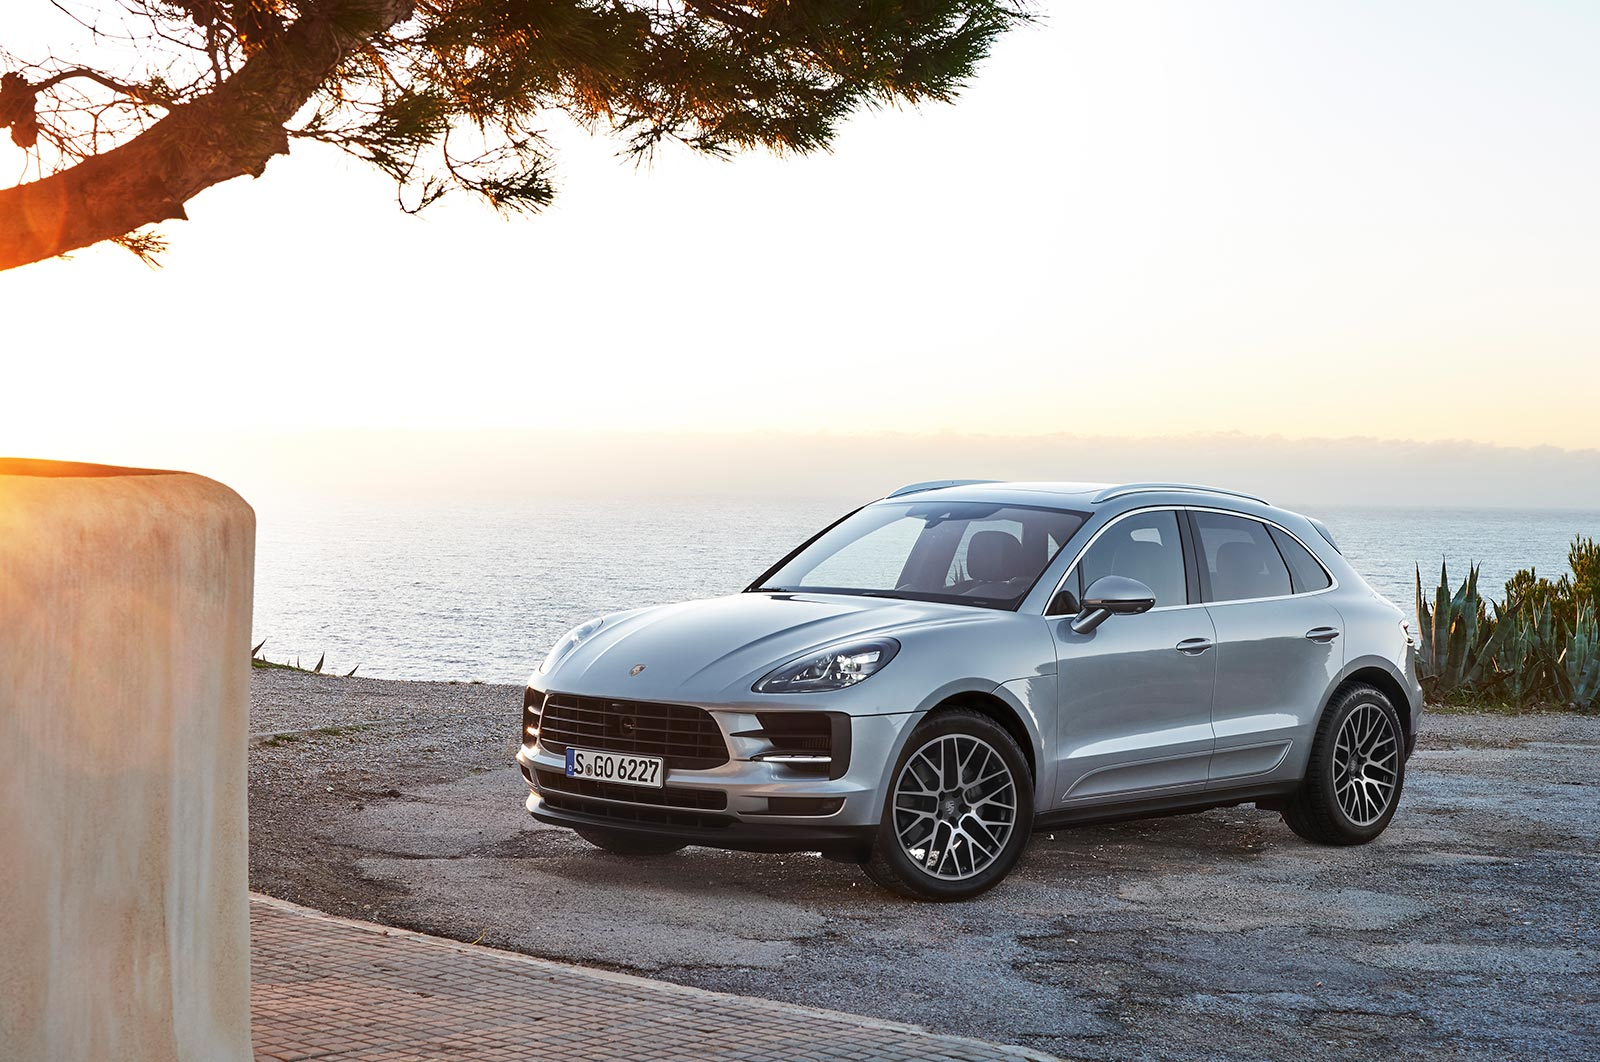 Porsche Macan S - The Ducker